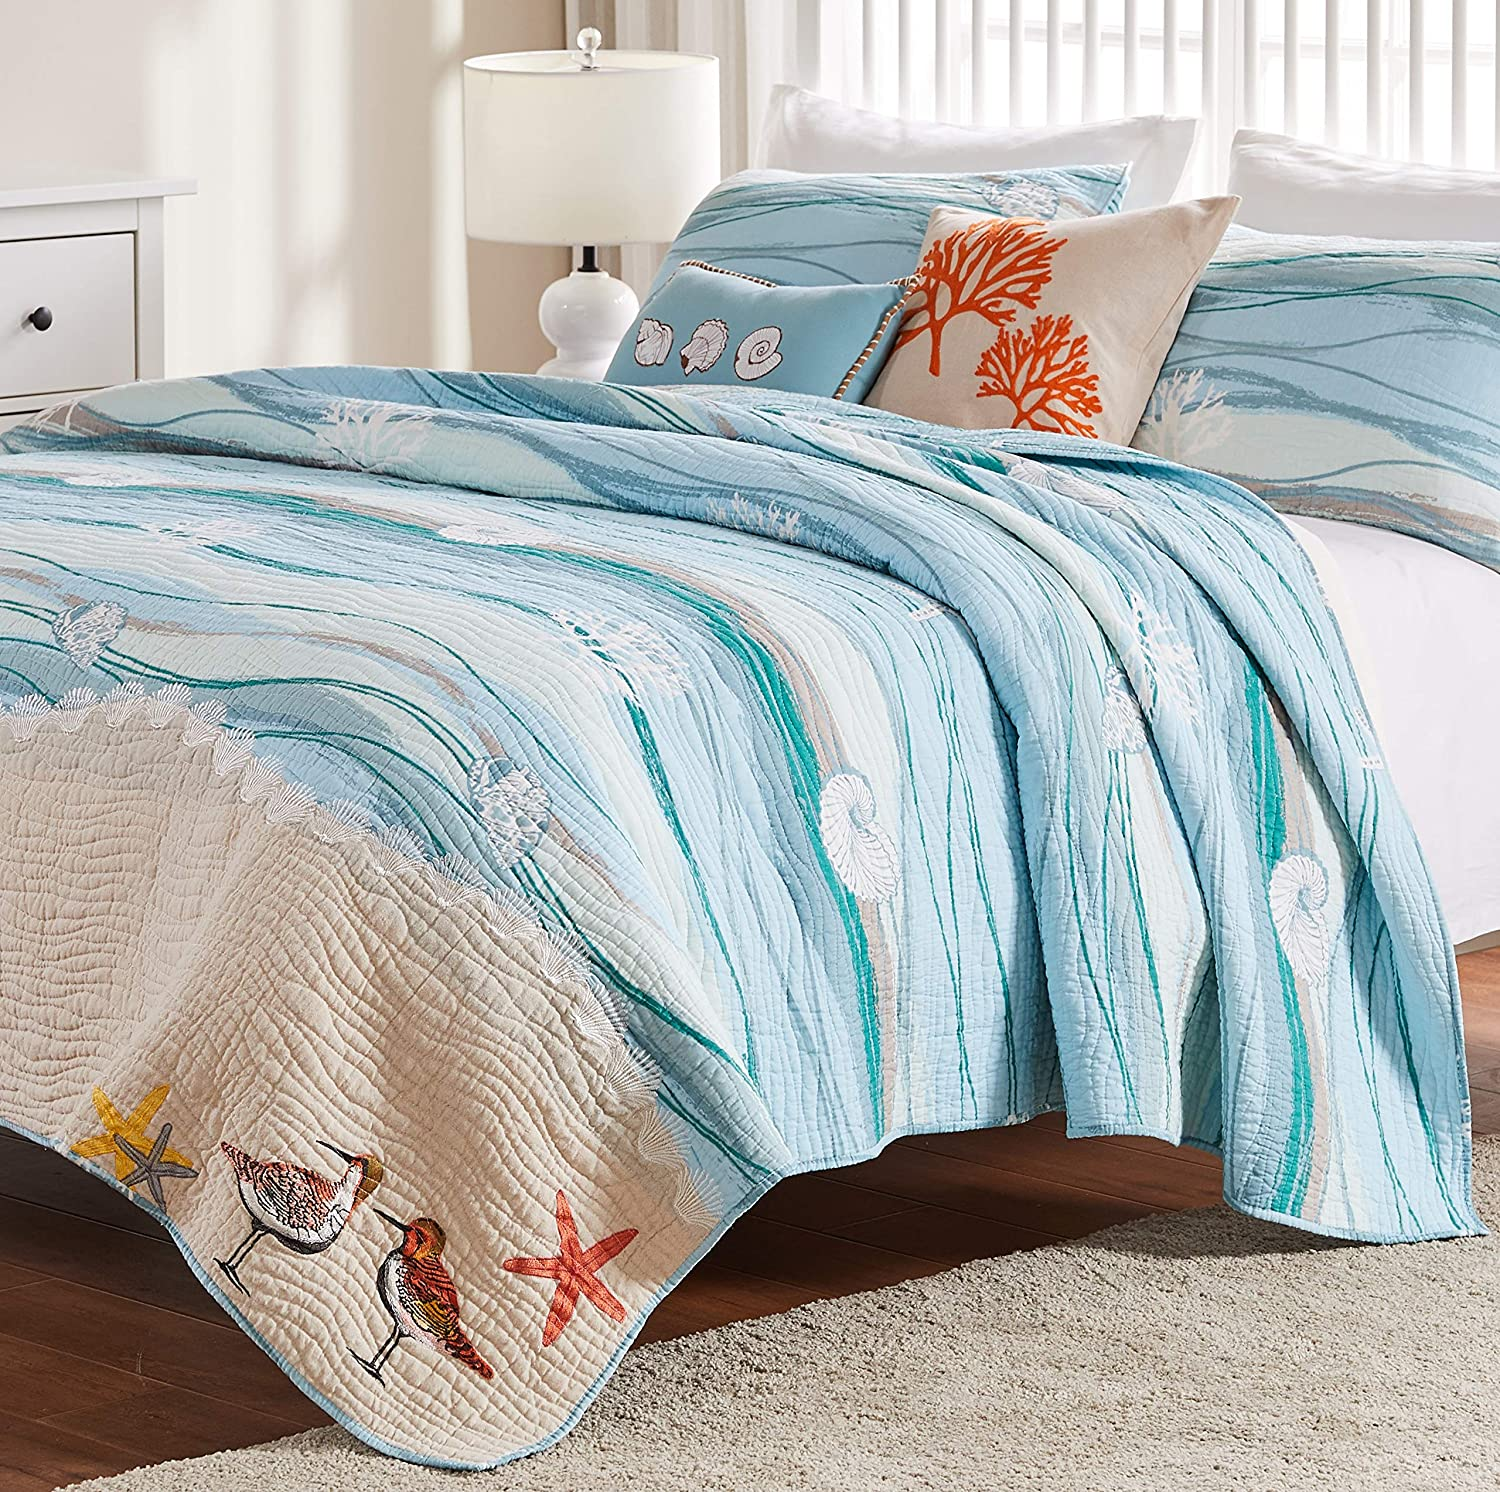 Greenland Home Maui Bonus Quilt Set 4-Piece Twin